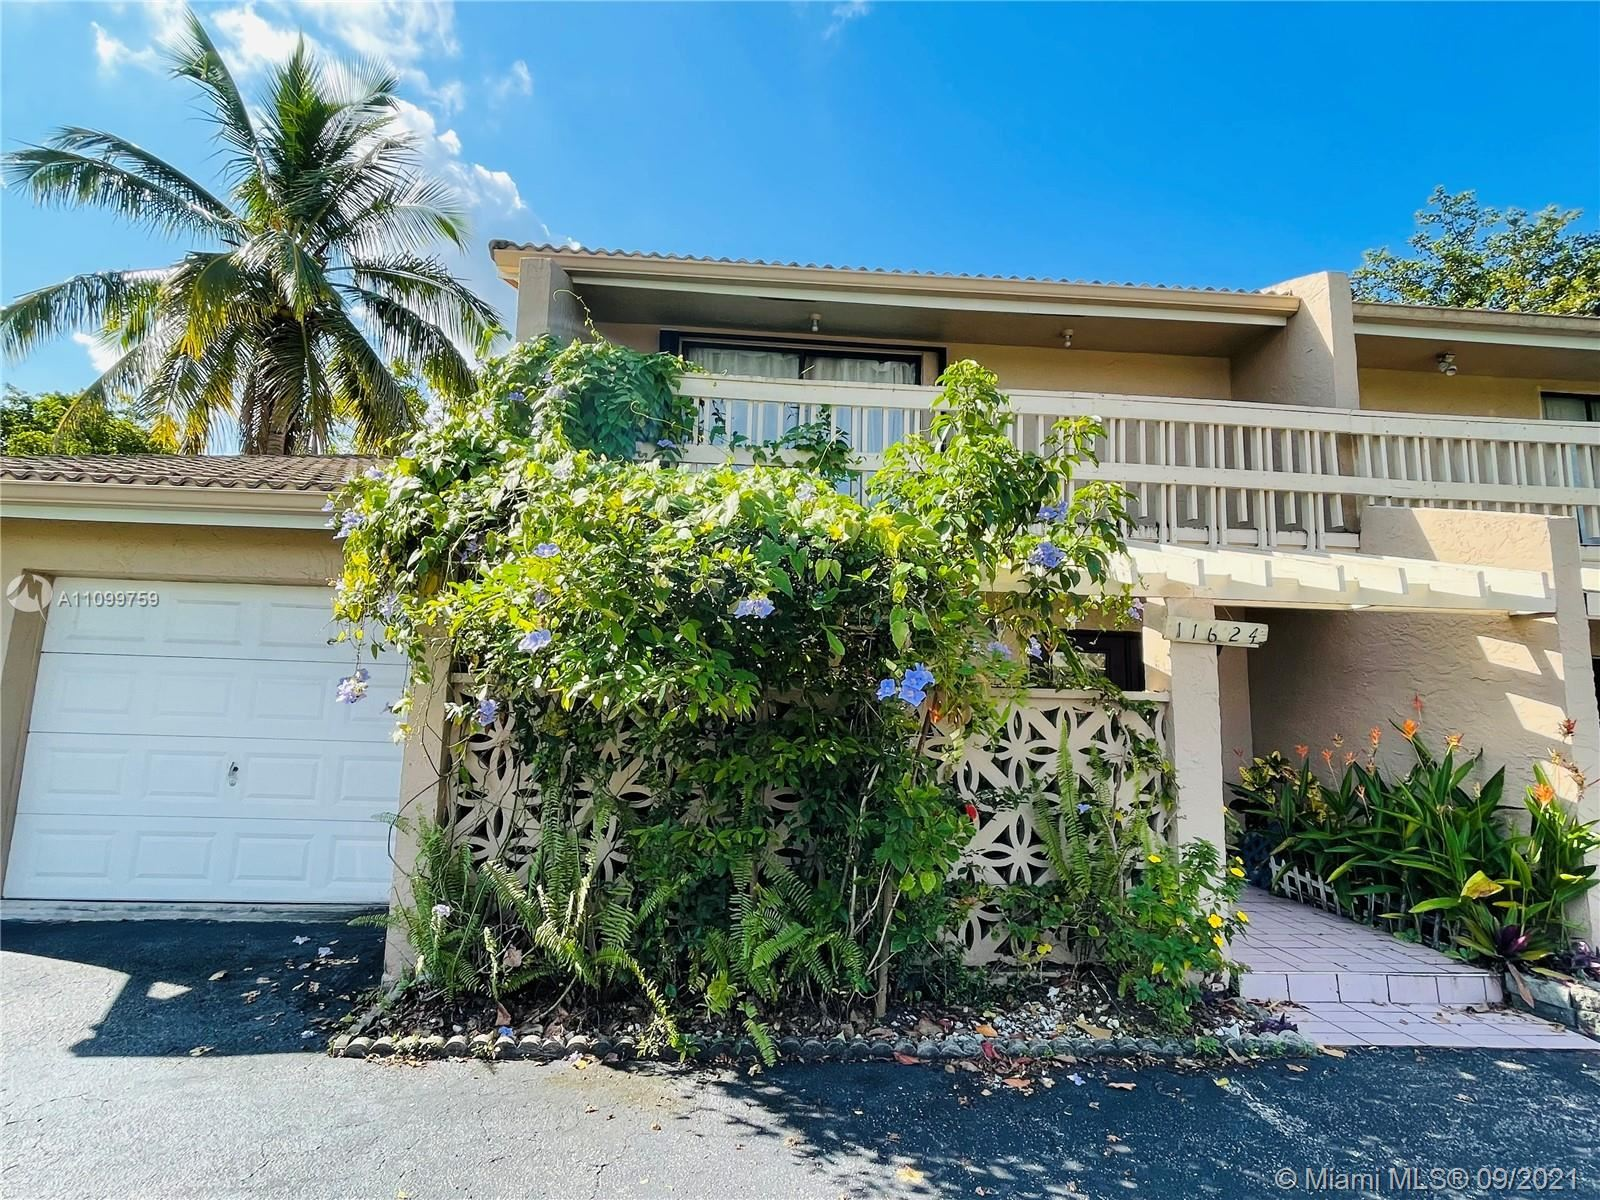 11624 NW 30th St #1E, Coral Springs, FL 33065 - #: A11099759